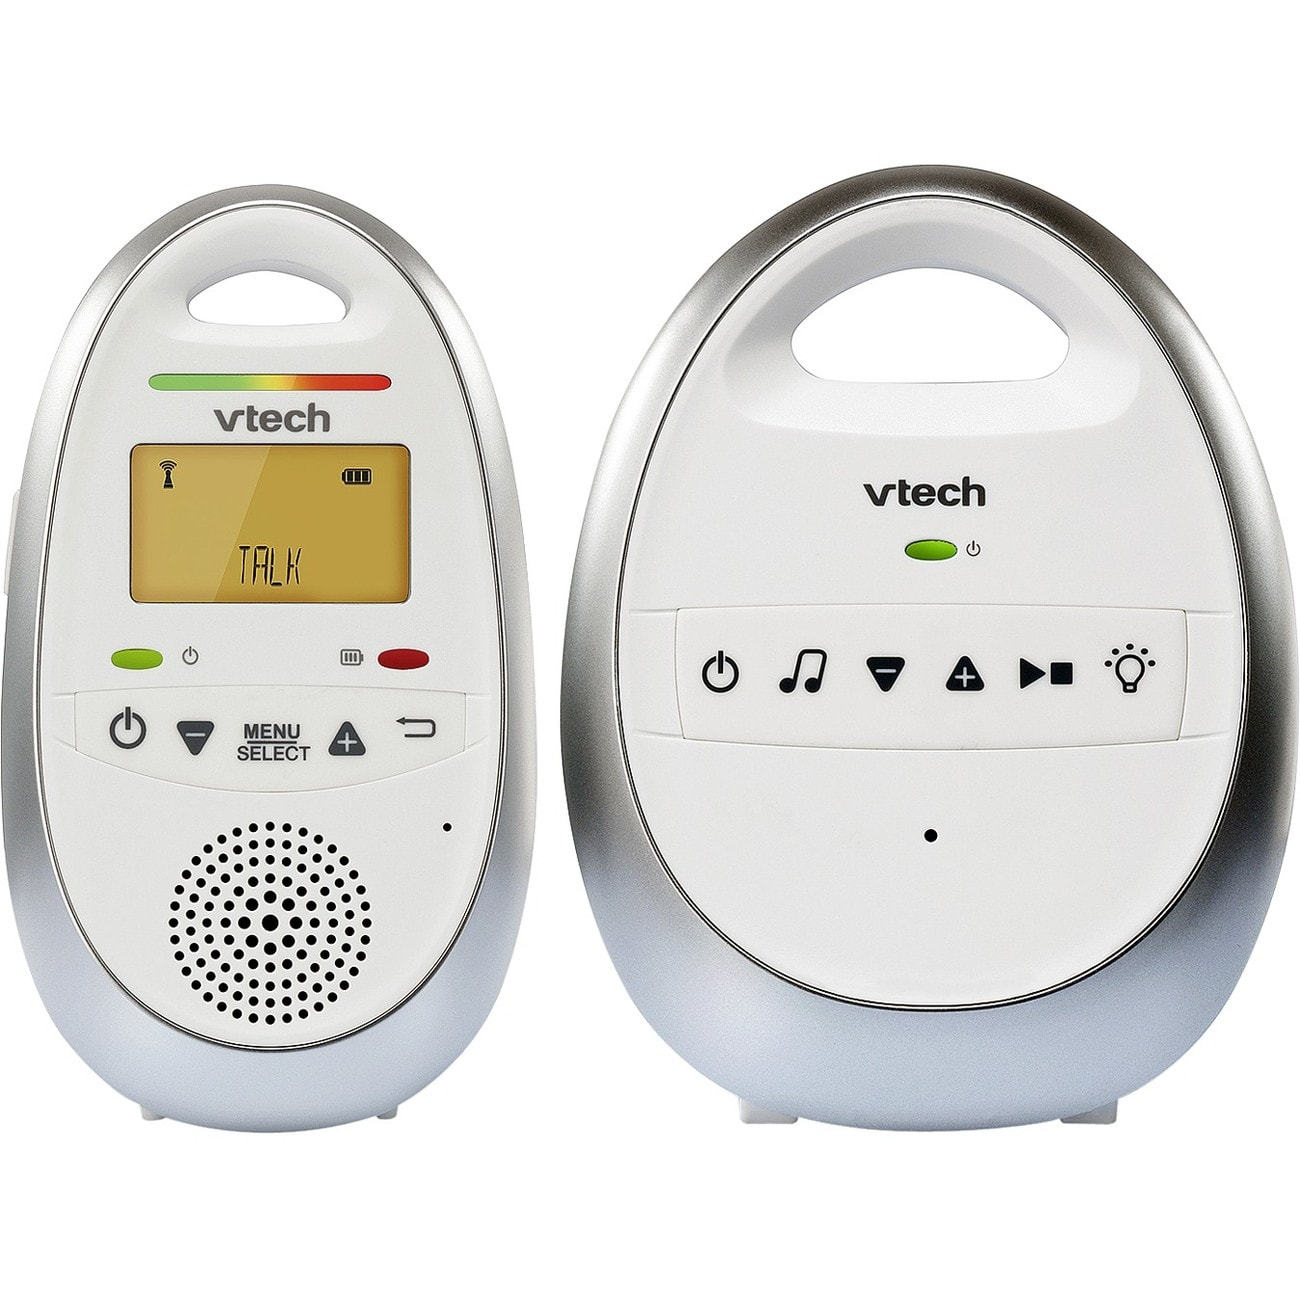 Image for Vtech Safe&Sound DM521 DECT 6.0 Digital Audio Baby Monitor from Circuit City